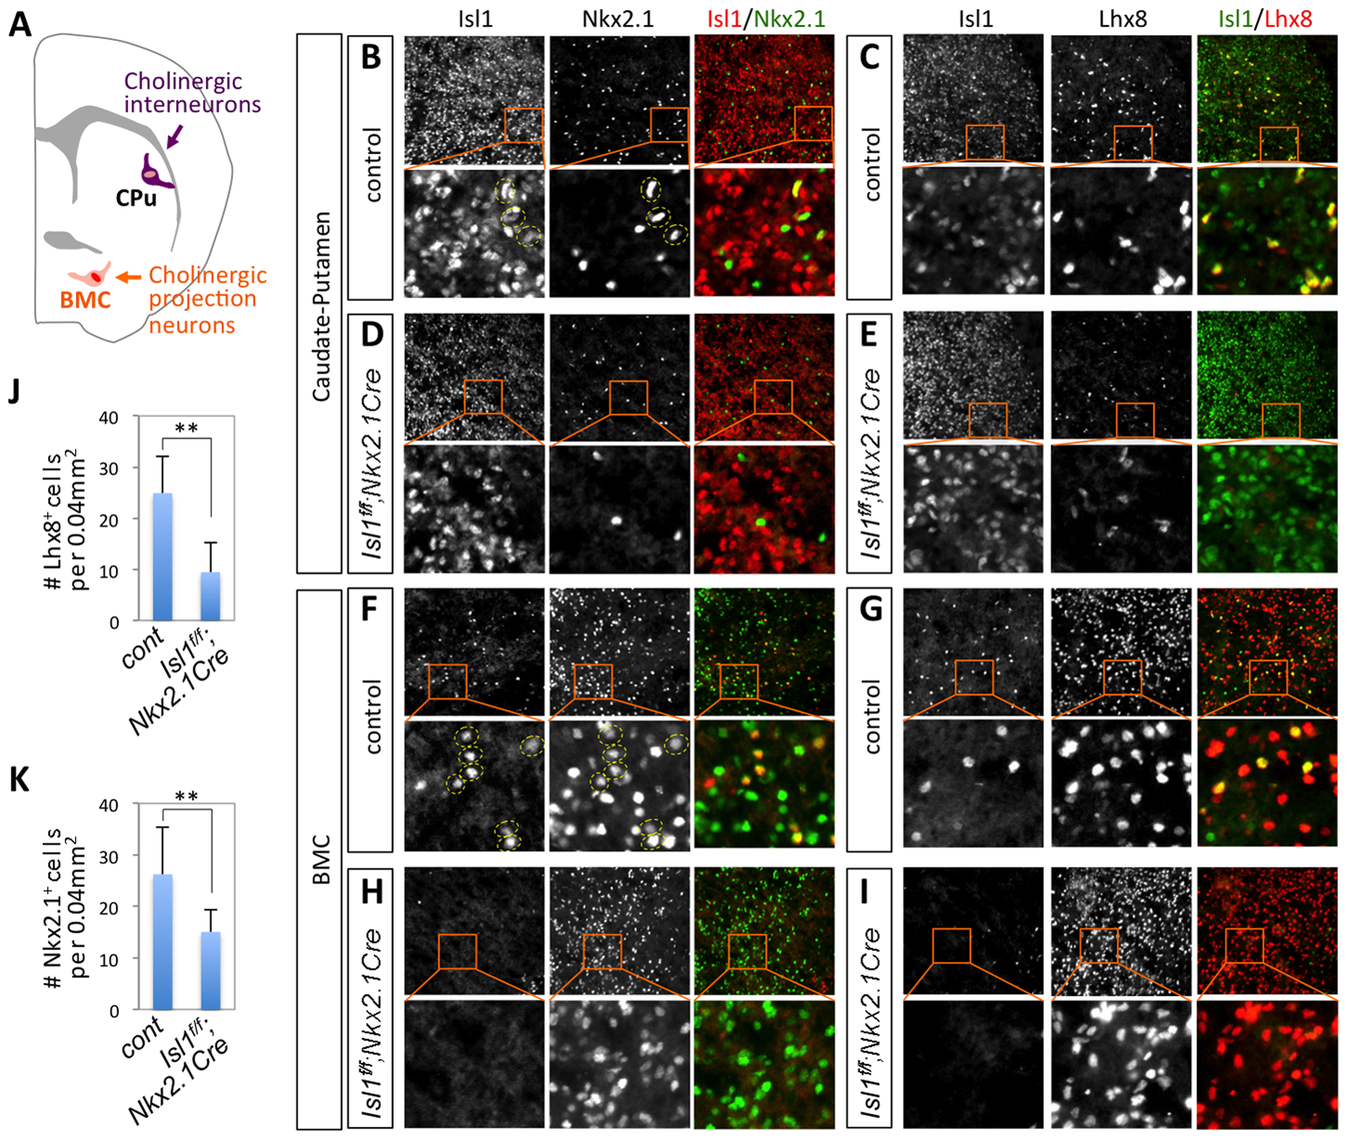 Isl1 is co-expressed with Nkx2.1 and Lhx8 in the CPu and BMC and is important for the formation of Nkx2.1/Lhx8-expressing striatal interneurons.